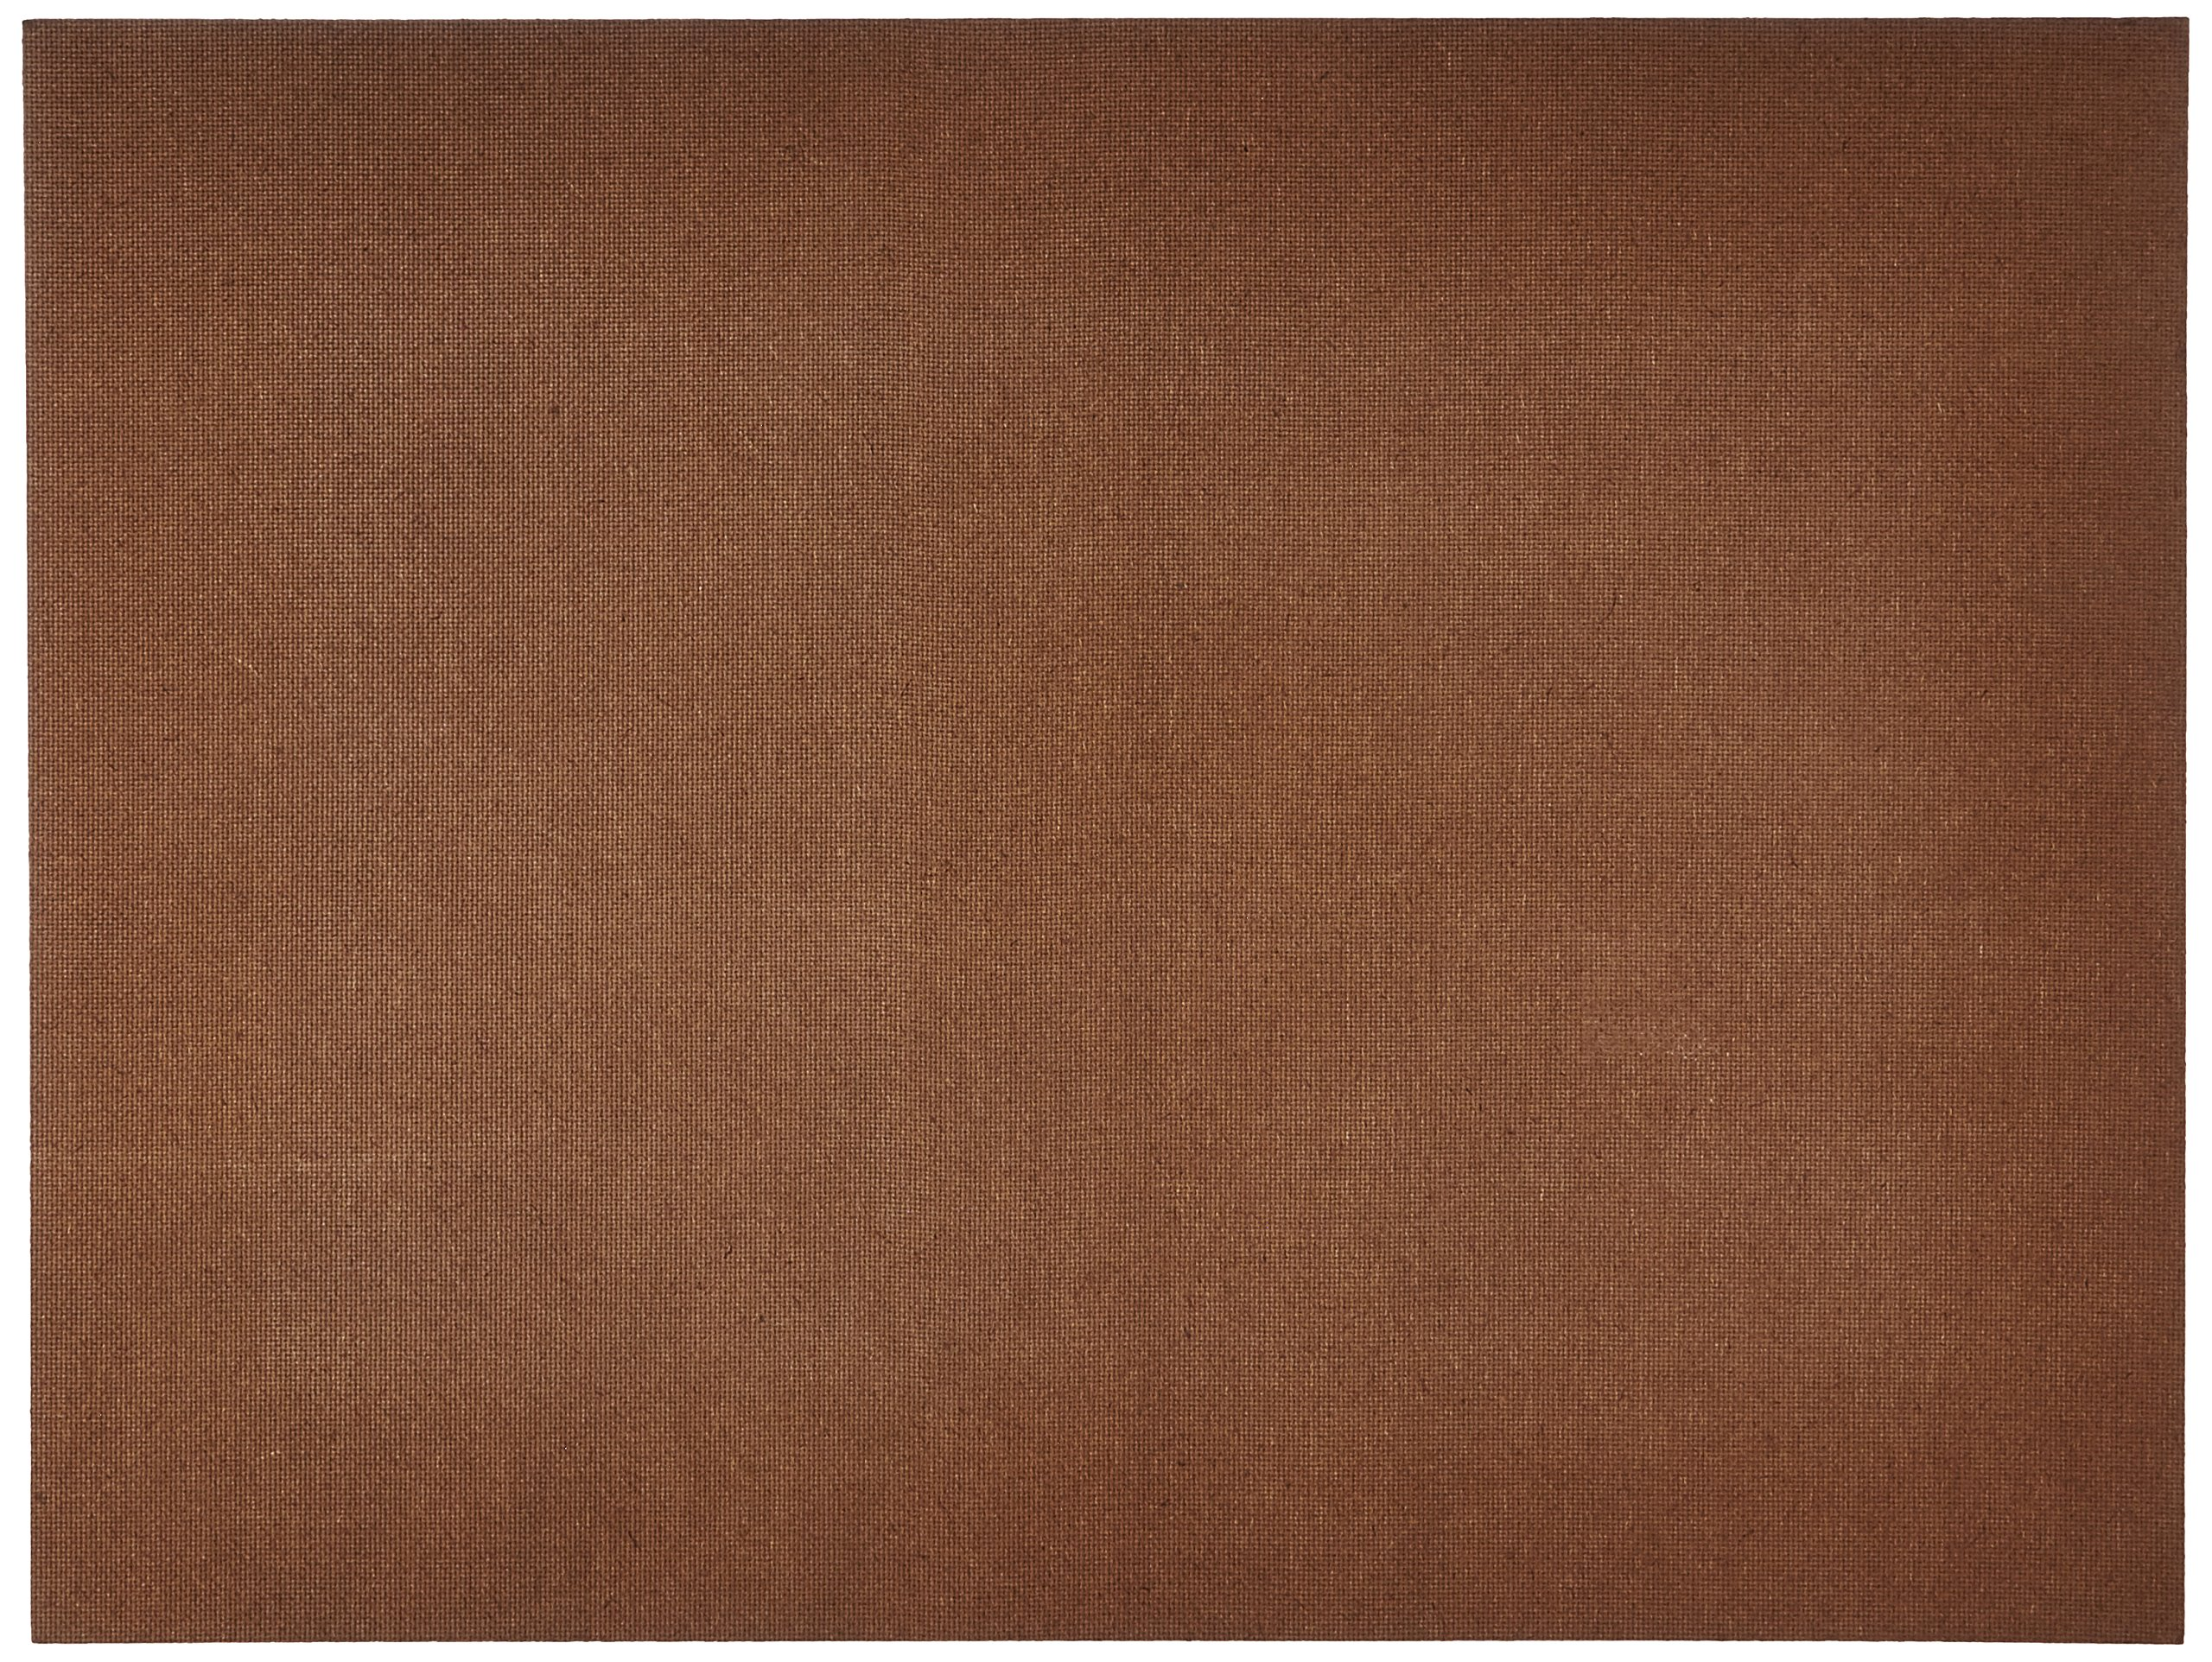 School Specialty Masonite Panel, 18 x 24 Inches, 1/8 Inch Thick by School Specialty